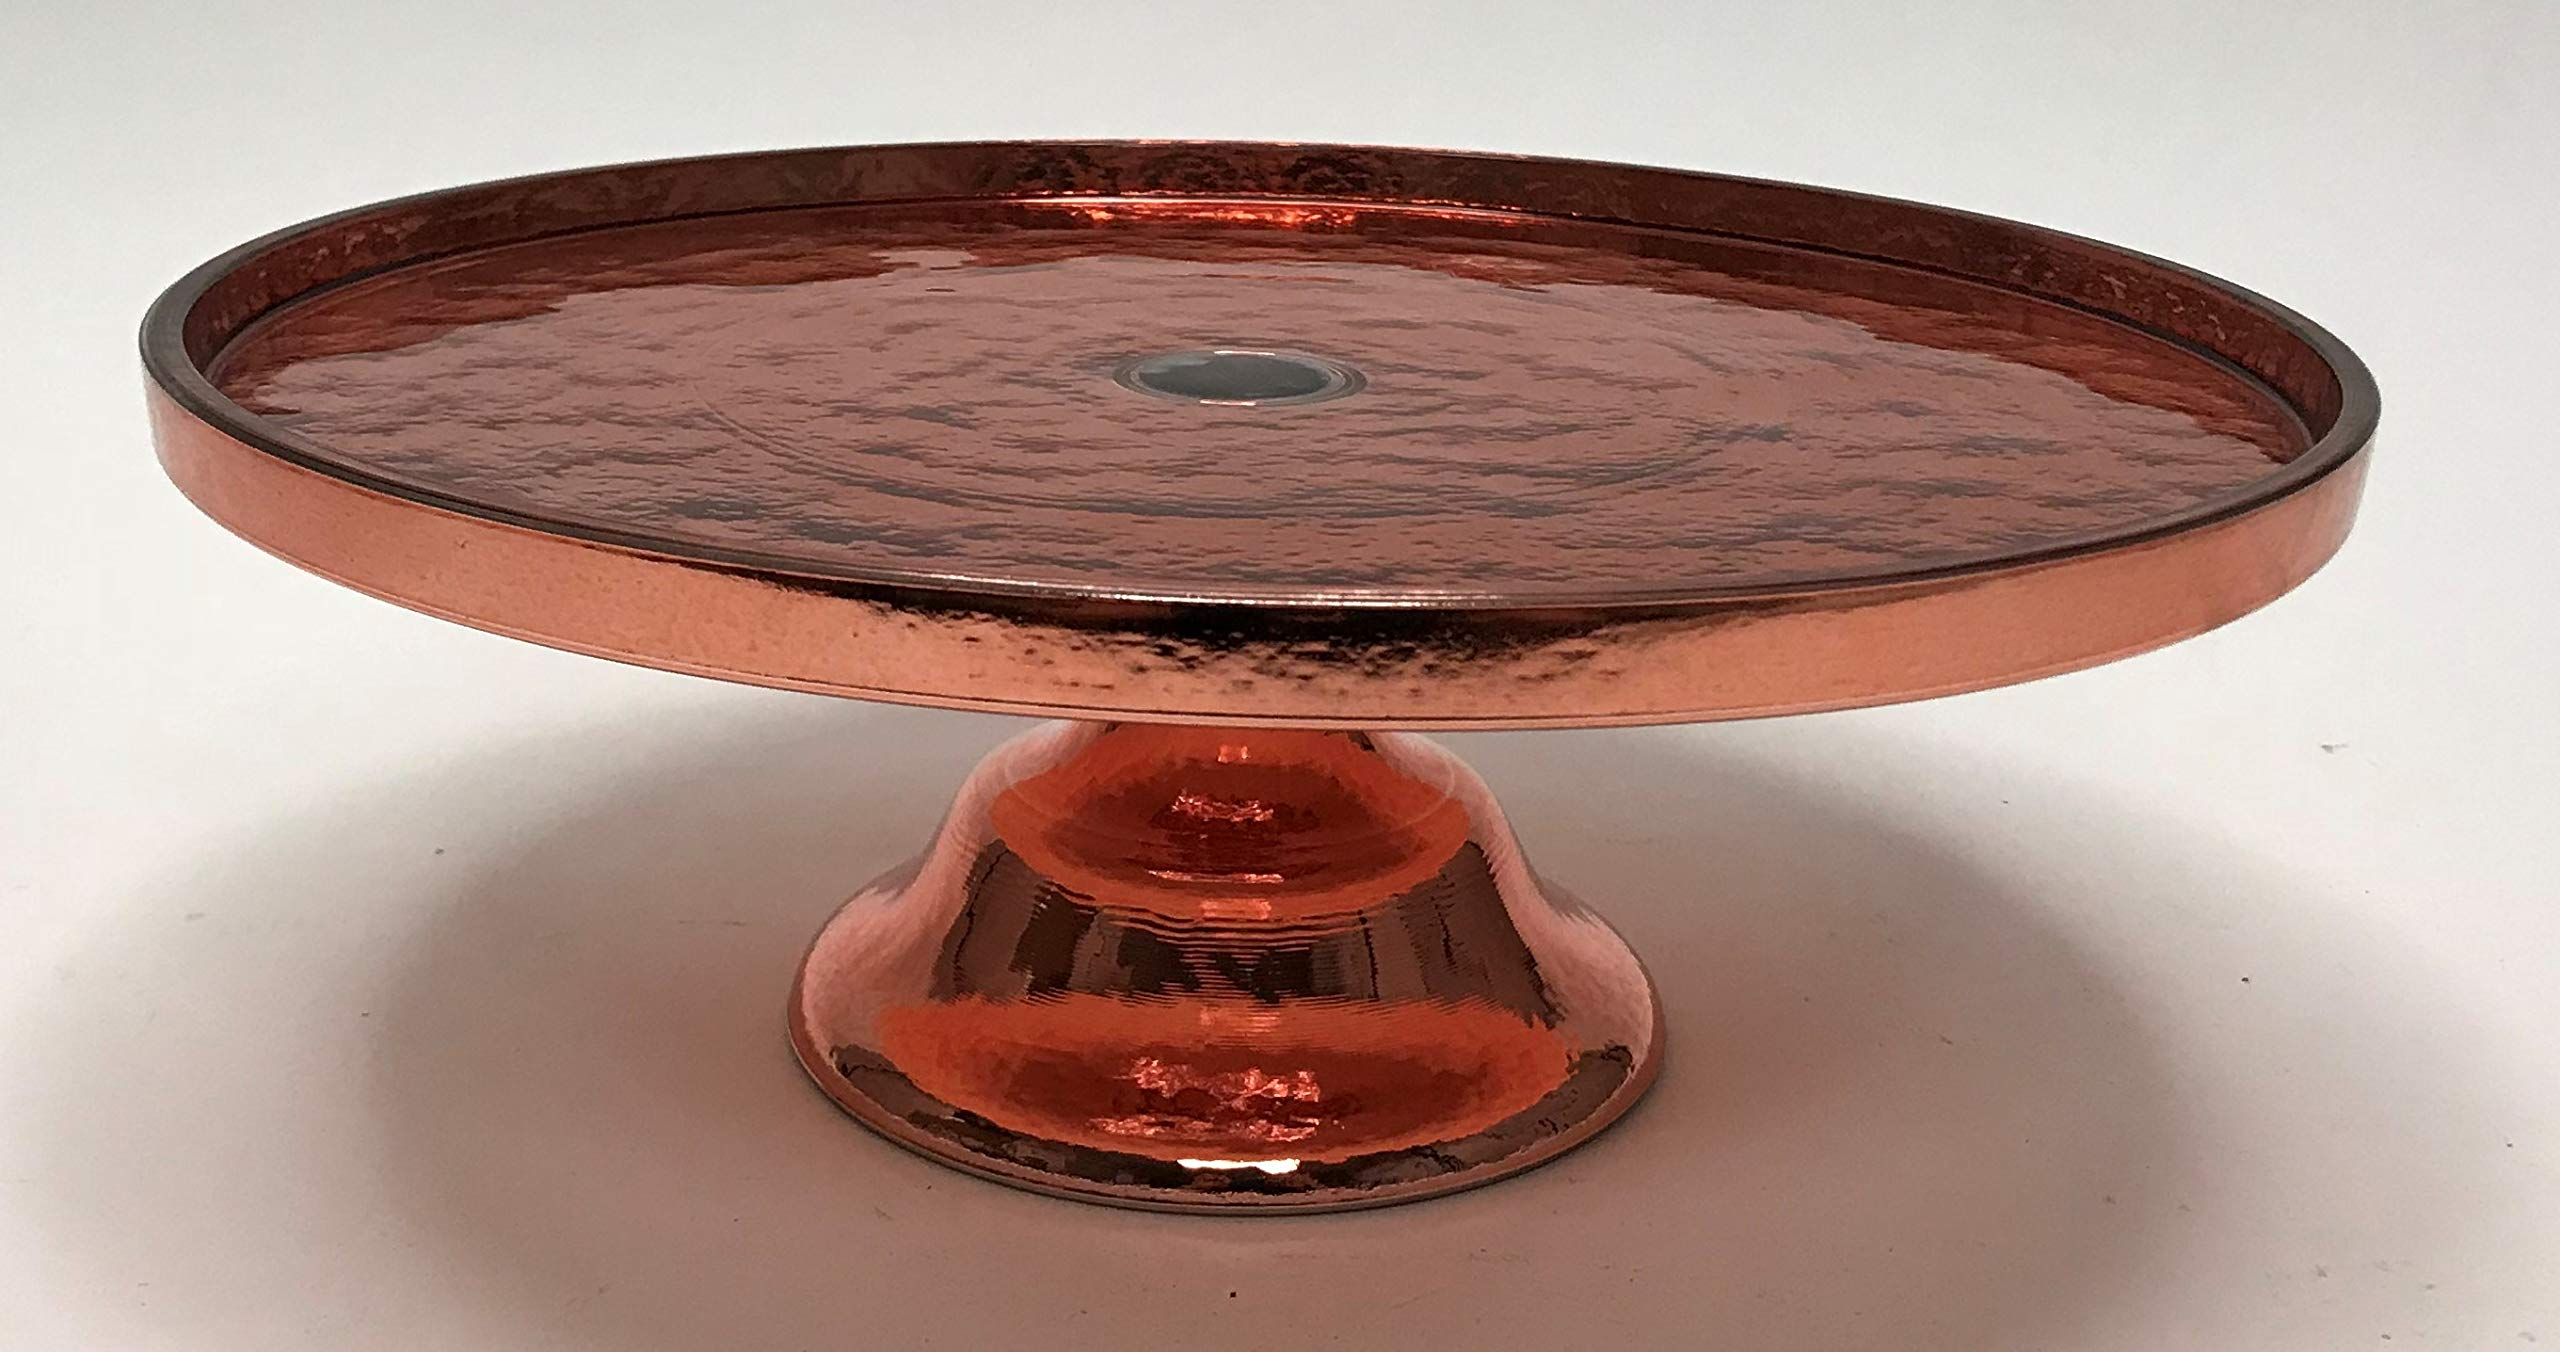 Circleware Metro Metal Style Rose Gold Footed Cake Plate, 11.61 x 4.53